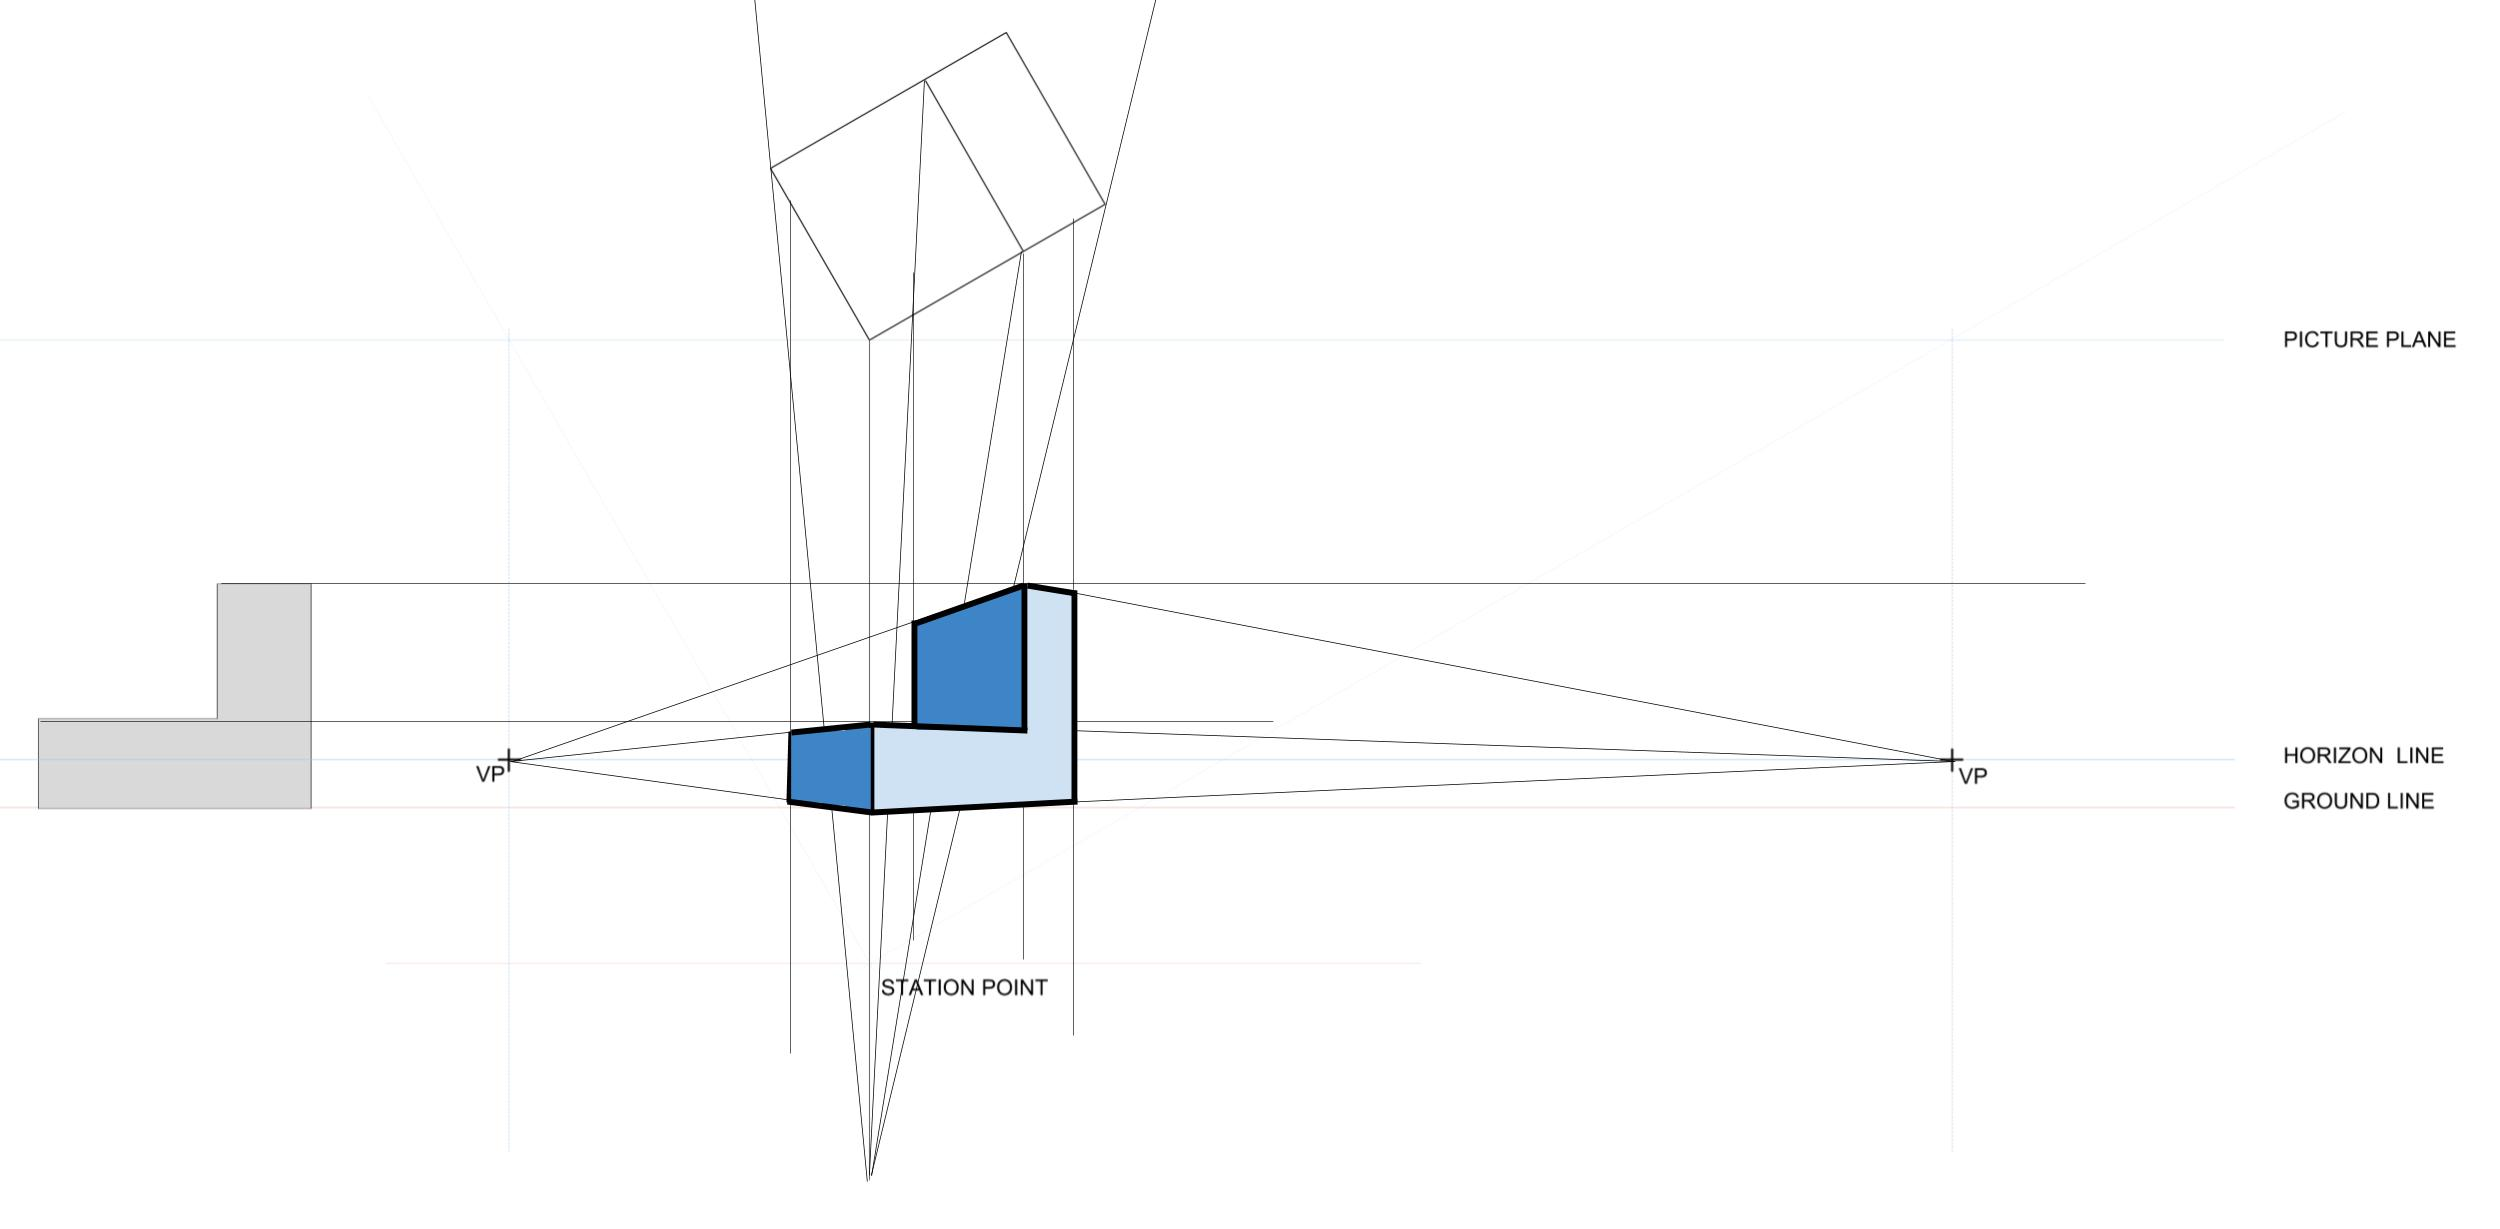 Perspective Drawing Ground Line